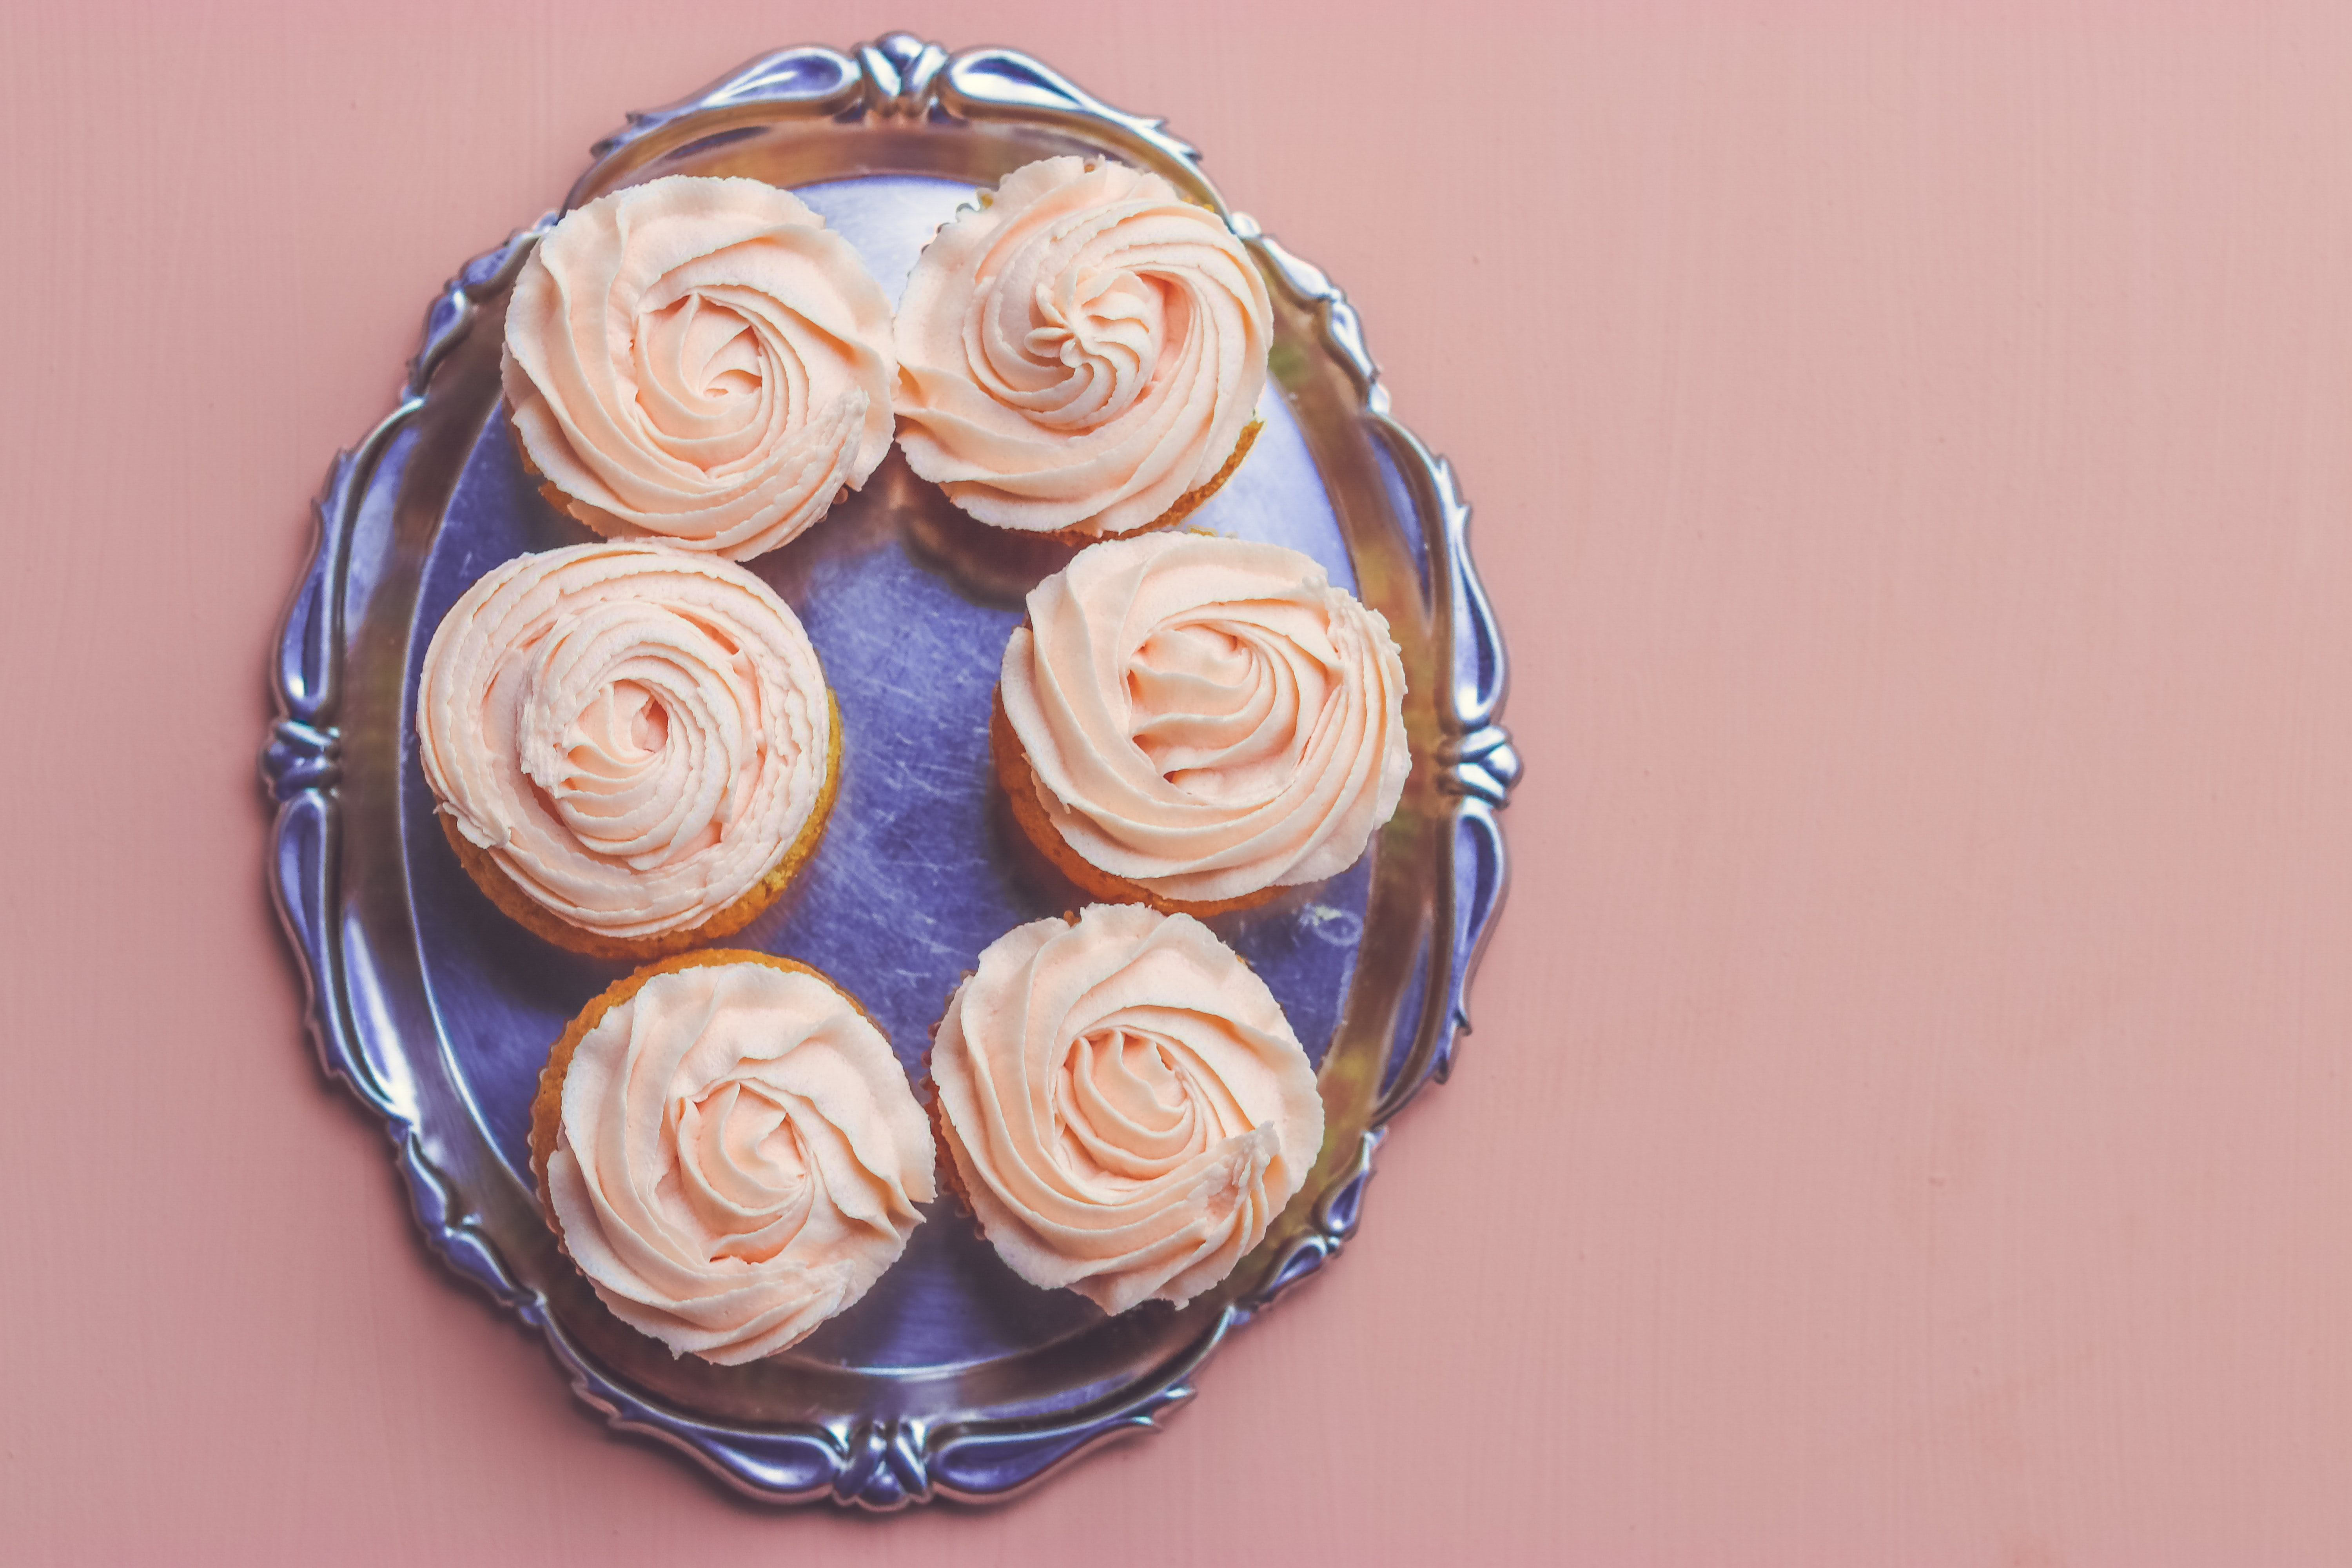 six cupcakes on stainless steel serving tray